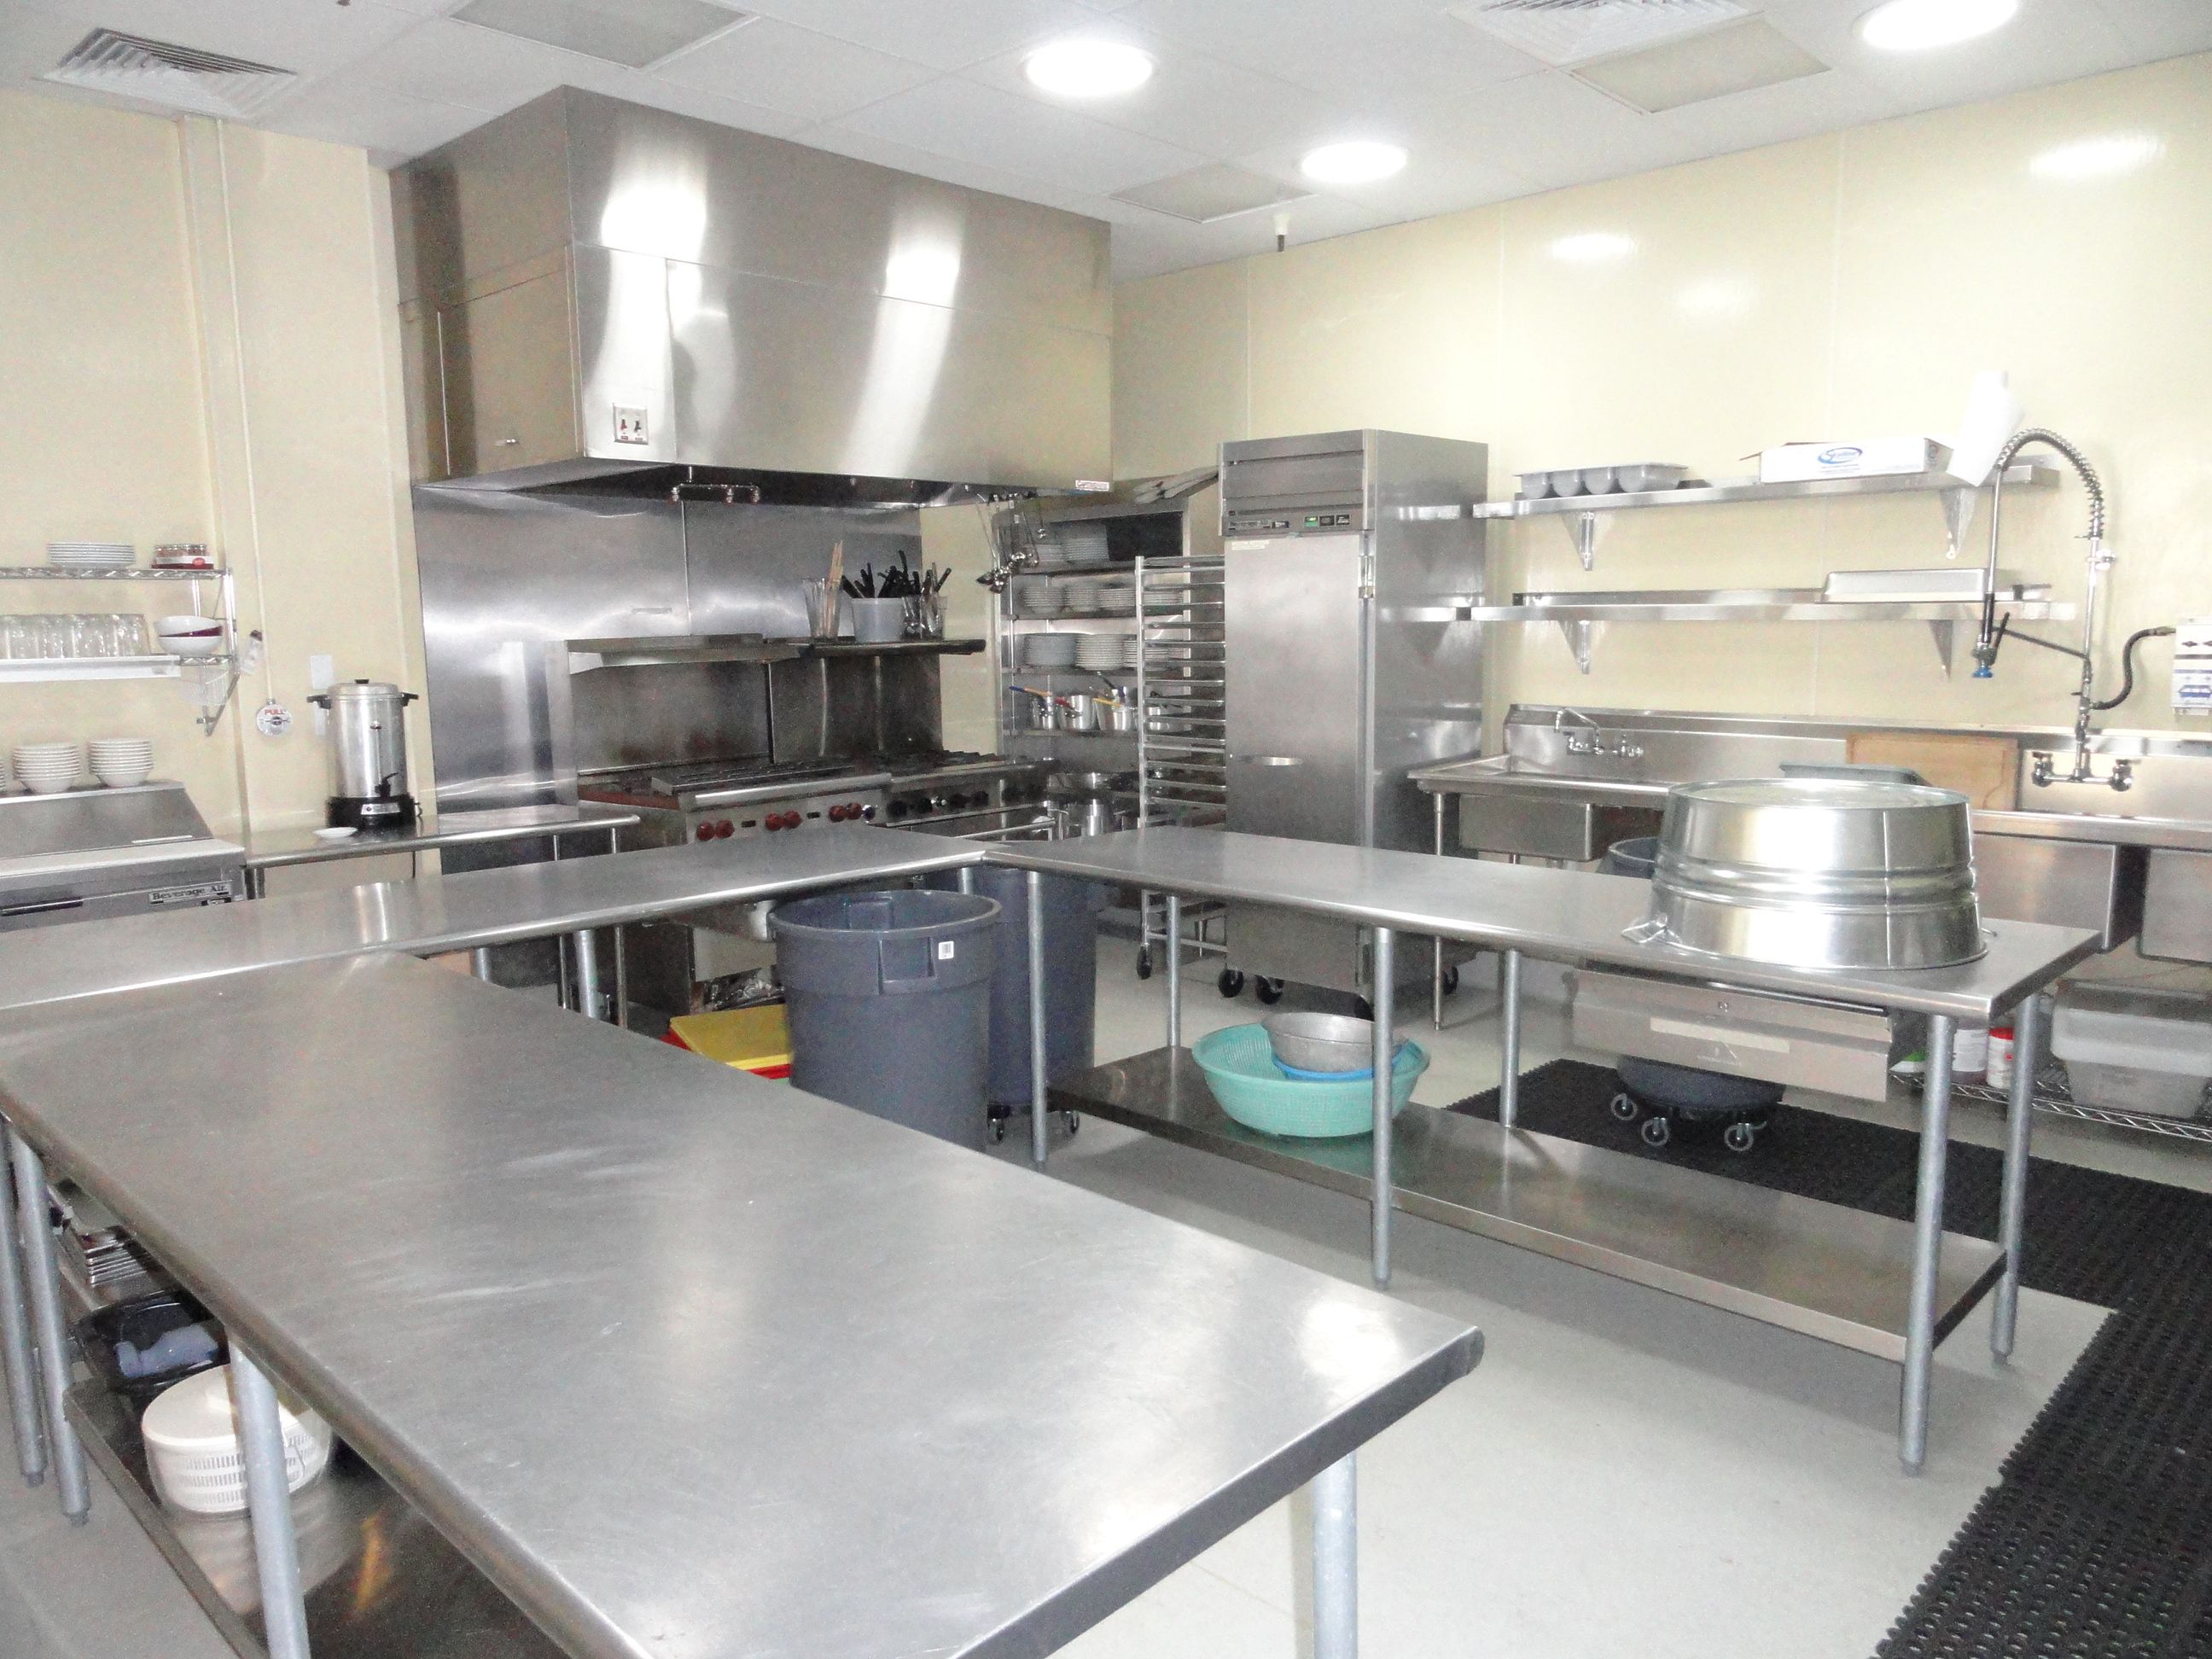 Excellent small commercial kitchen equipment digital